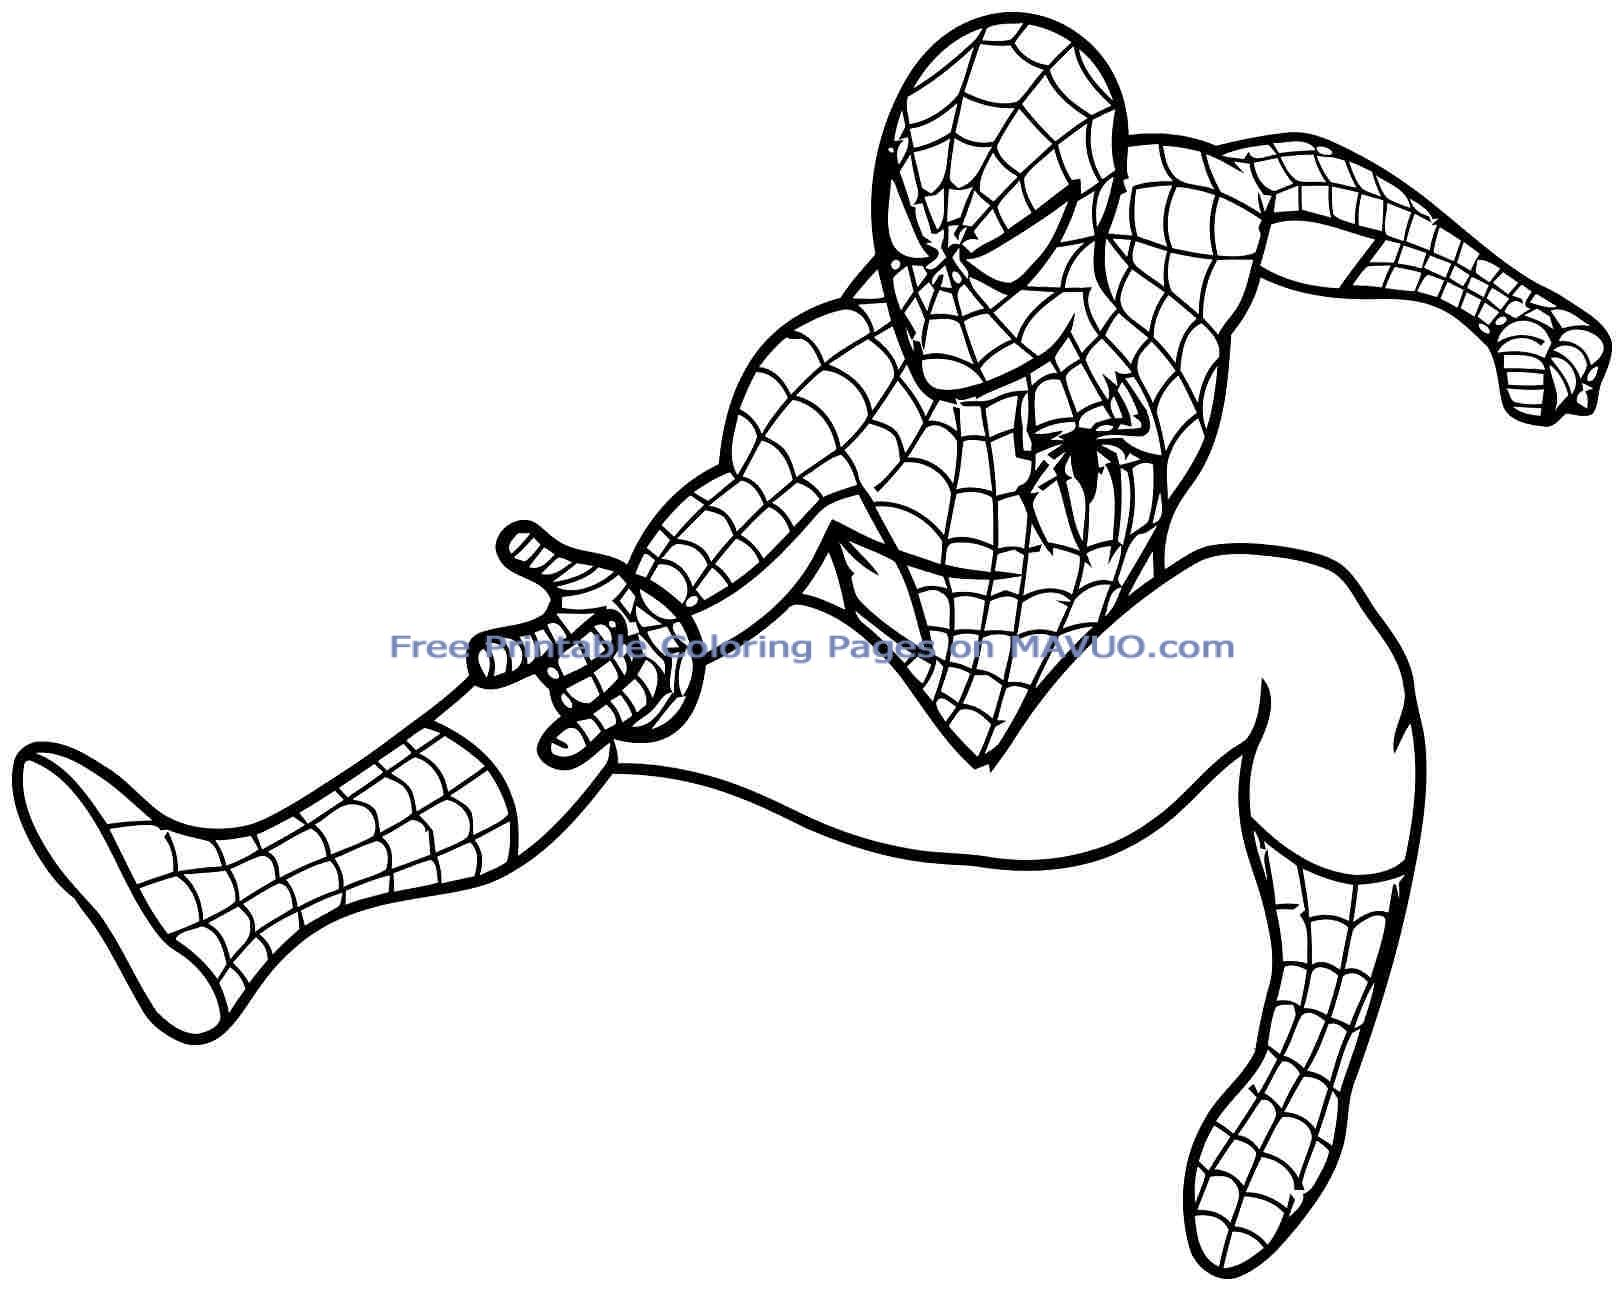 1624x1291 Superhero Coloring Pages For Kids Printable Superhero Coloring